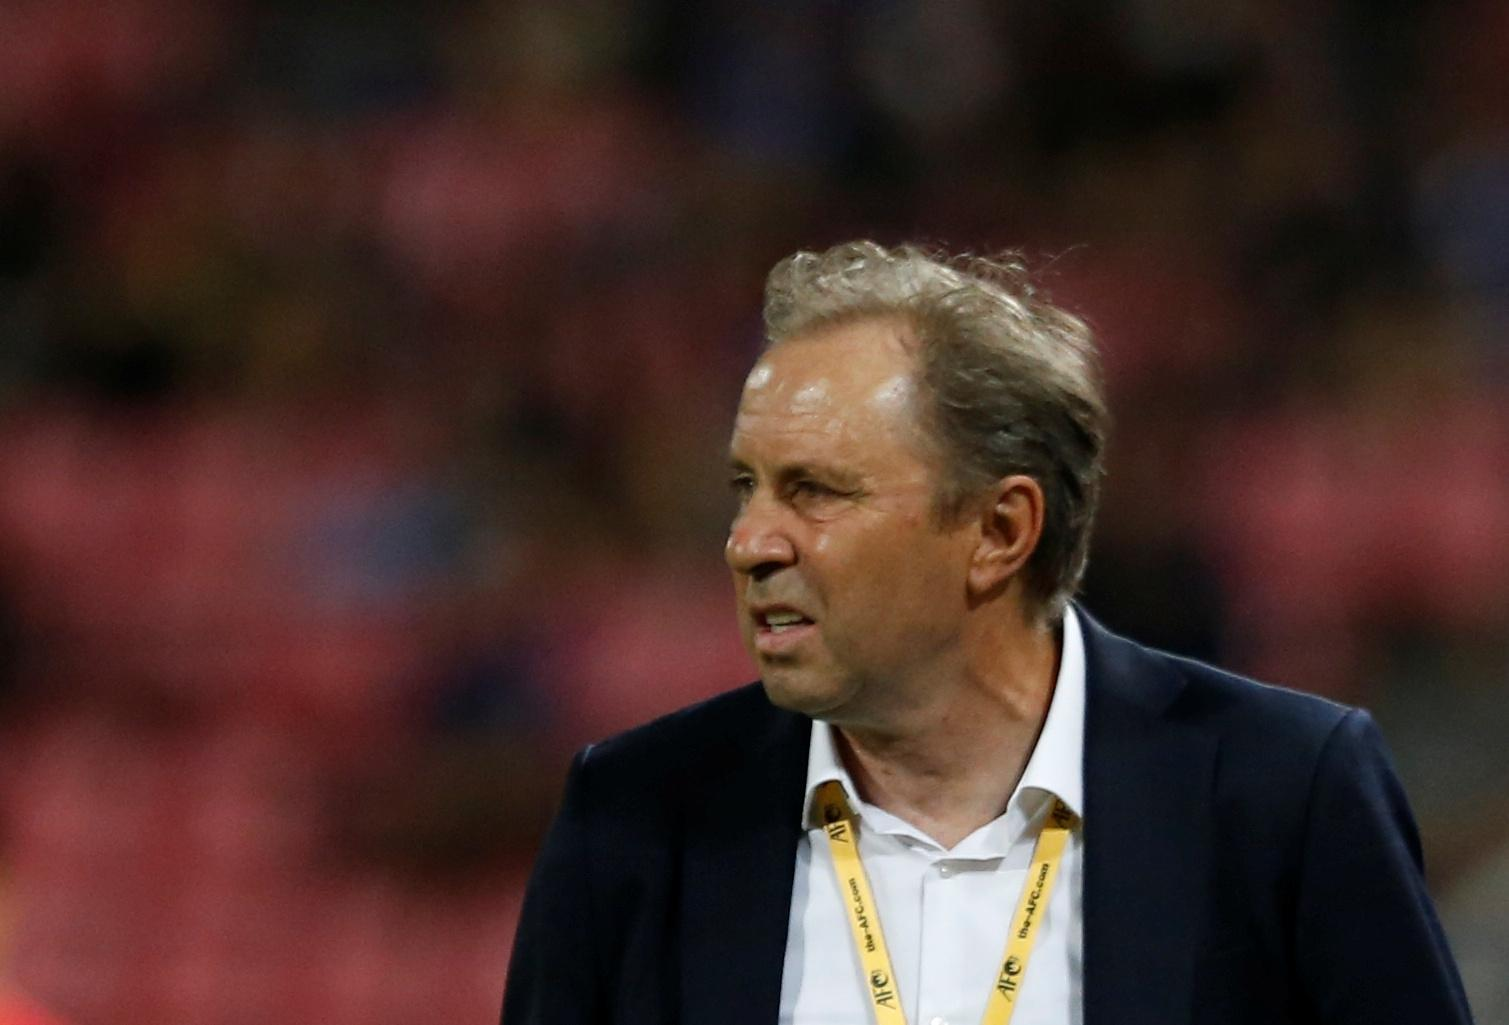 Soccer: Thailand fire coach after Asian Cup loss to India